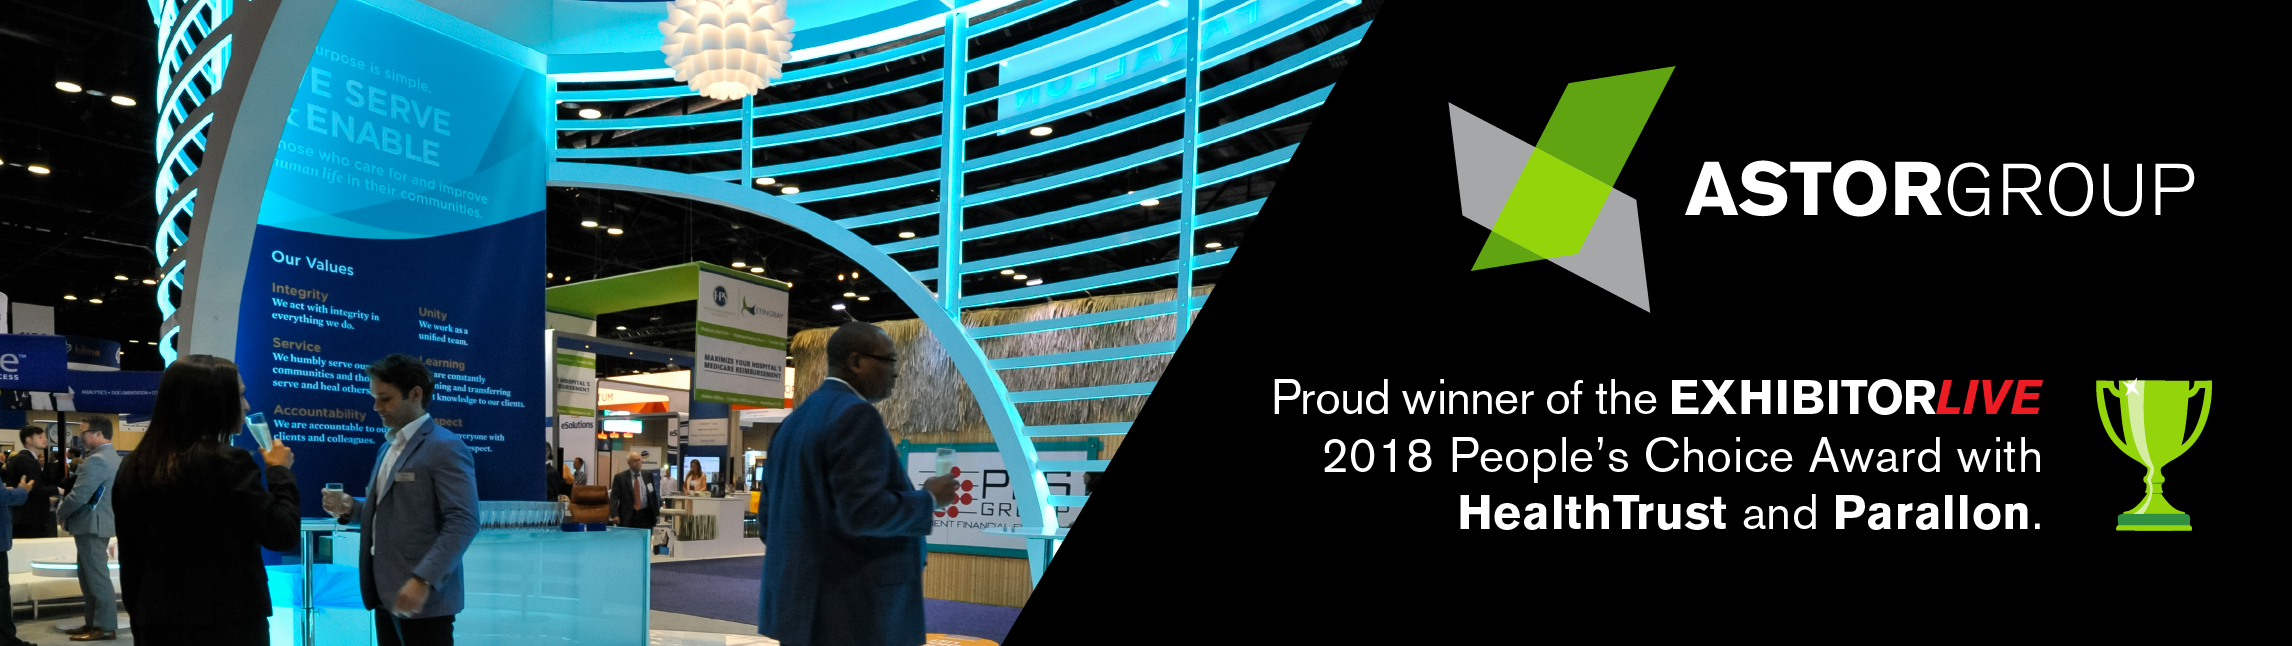 Astor Group: Proud winners of the EXHIBITORLIVE 2018 People's Choice Award.